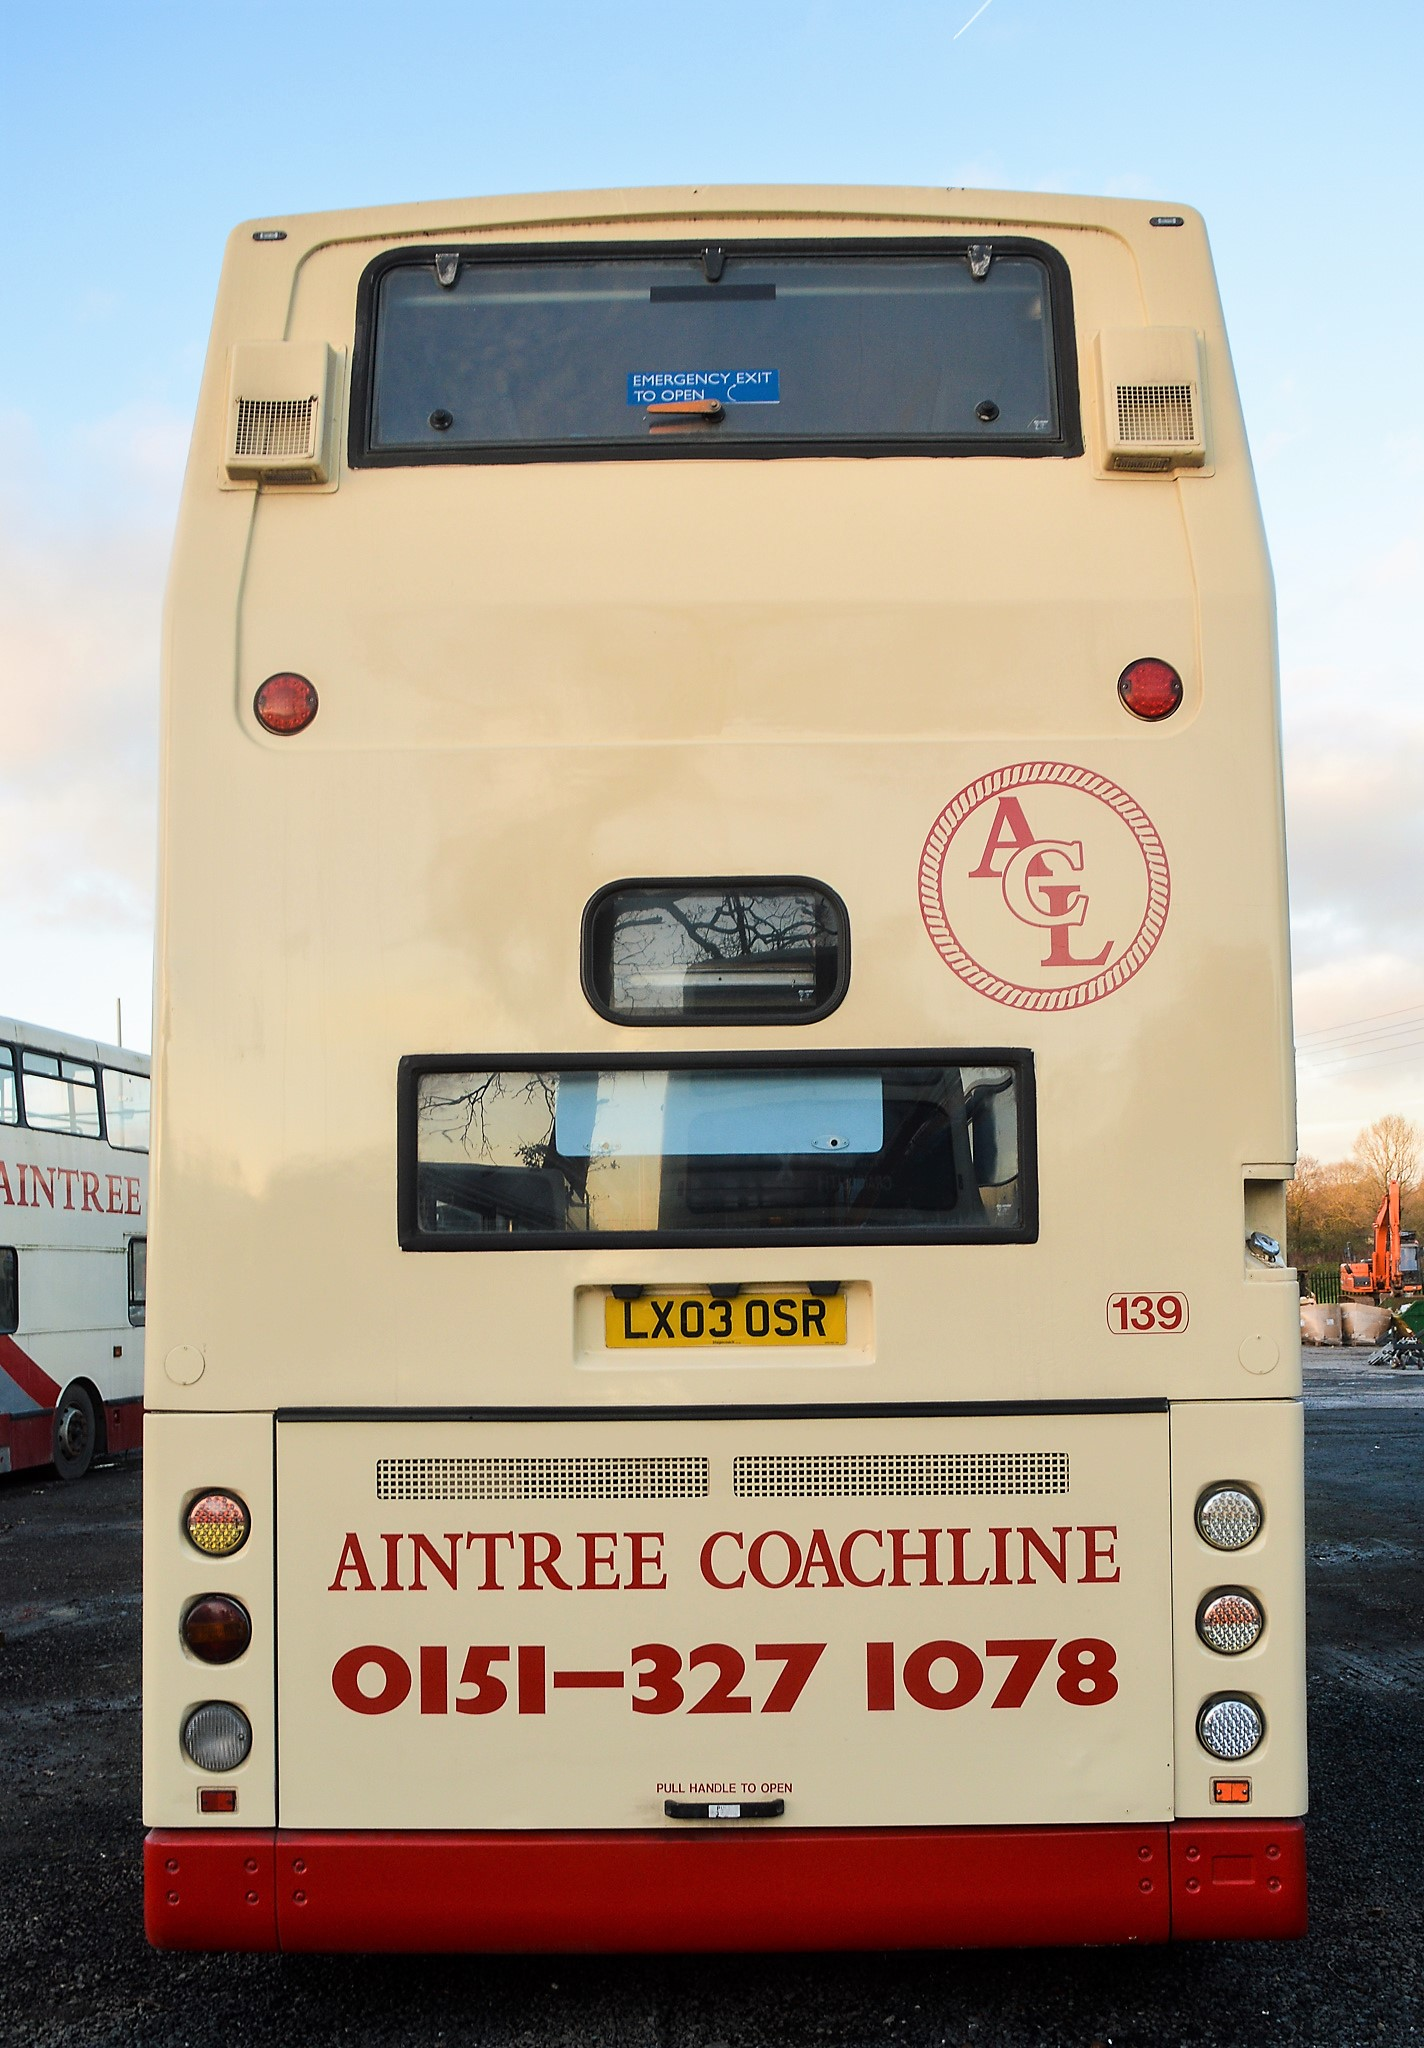 Lot 13 - Alexander Dennis Trident 78 seat double deck service bus Registration Number: LX03 OSR Date of